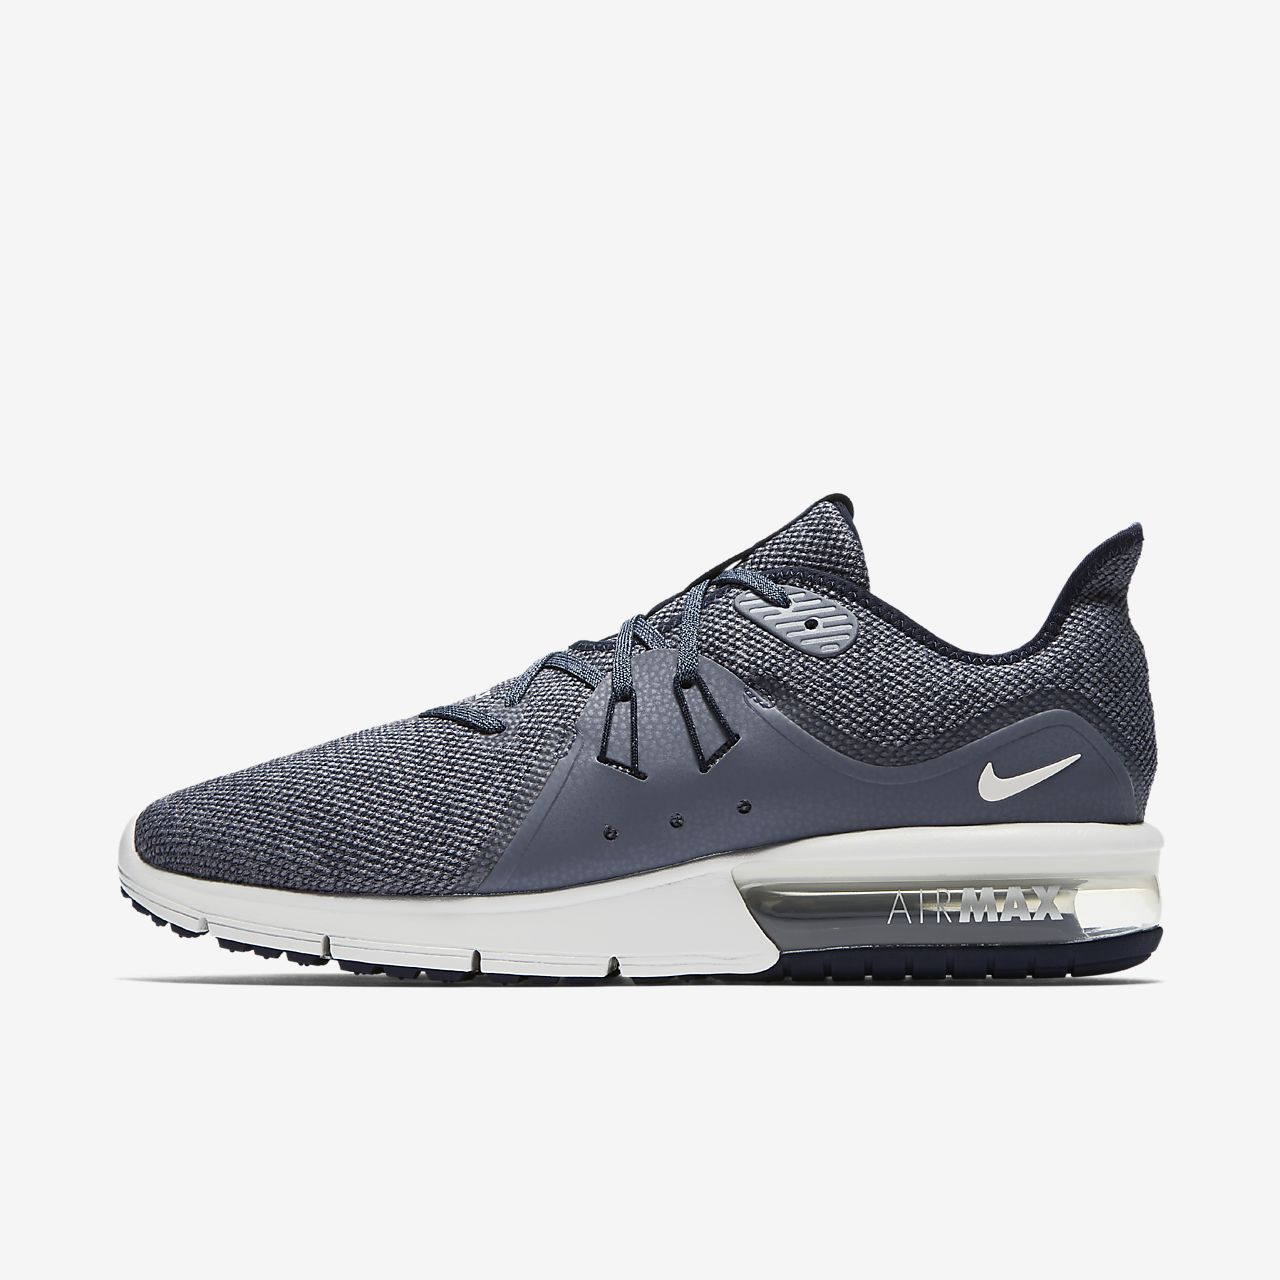 nike air max sequent 3 men 39 s running shoe. Black Bedroom Furniture Sets. Home Design Ideas